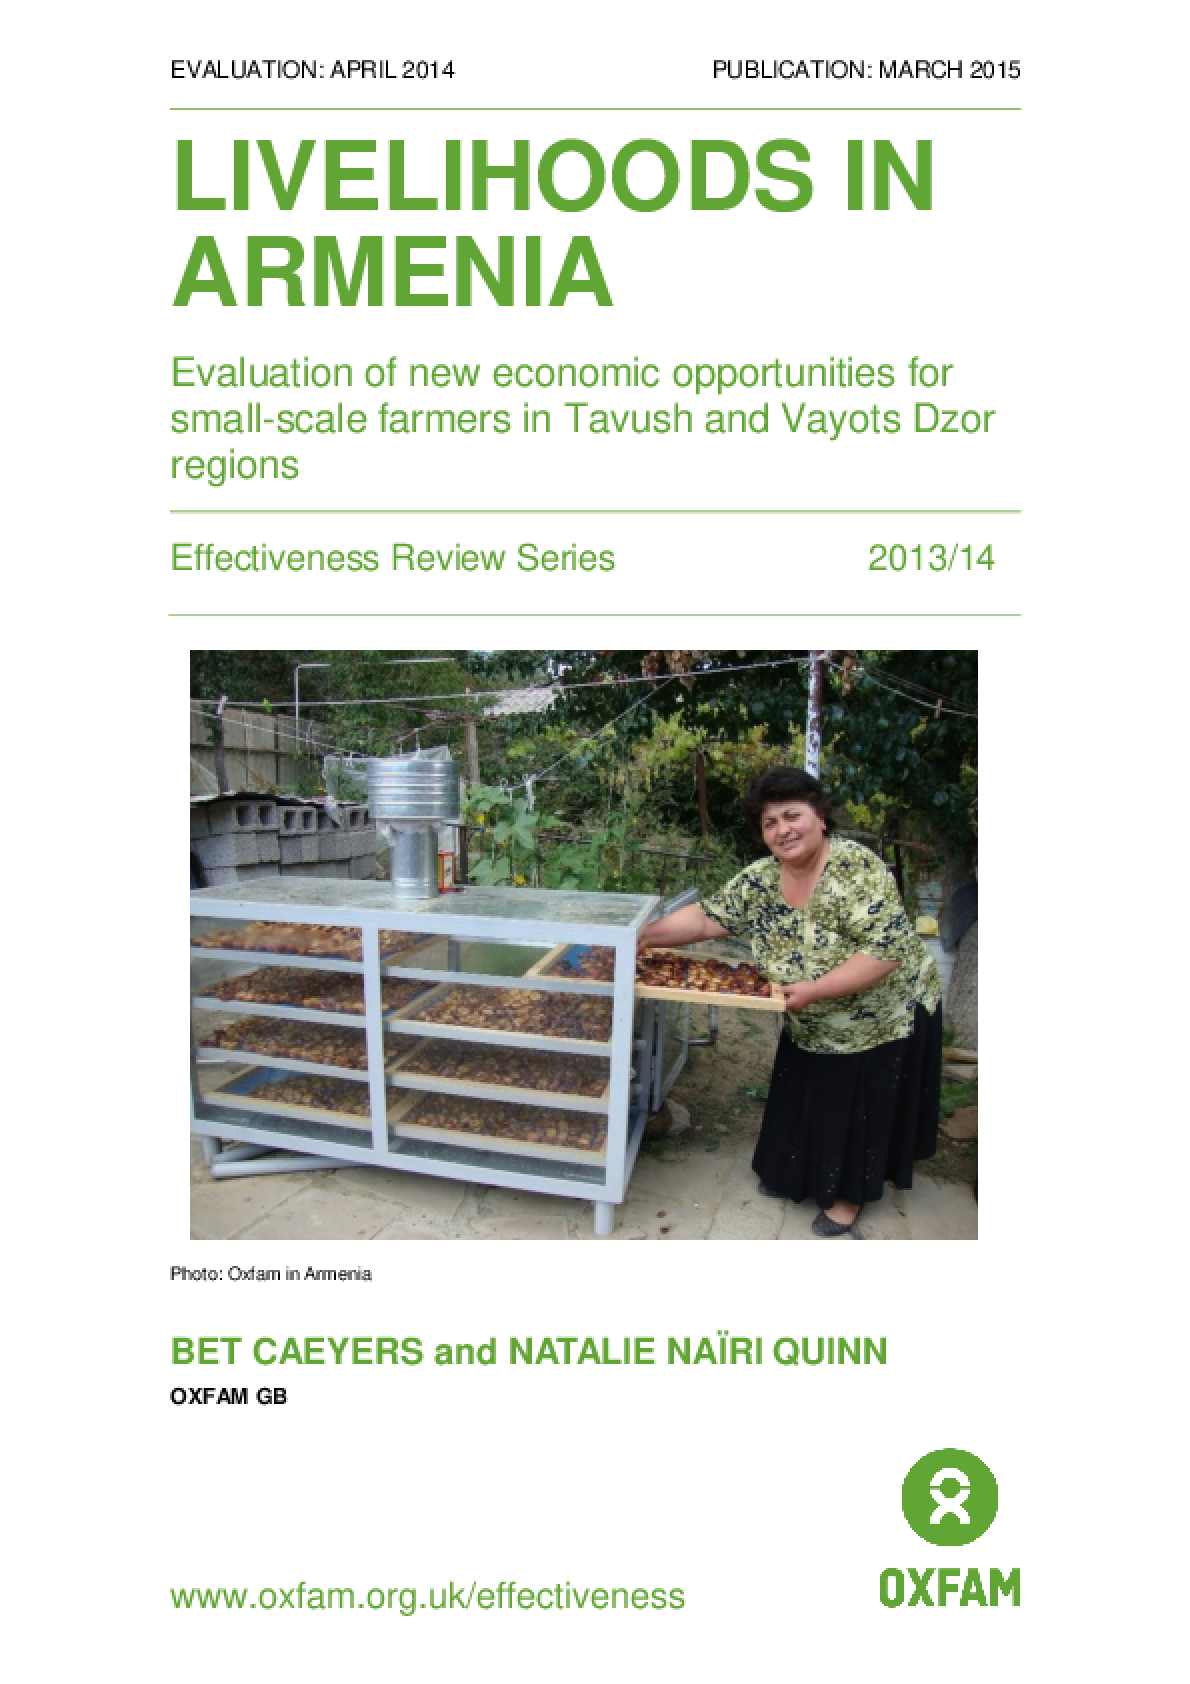 Livelihoods in Armenia: Evaluation of new economic opportunities for small-scale farmers in Tavush and Vayots Dzor regions